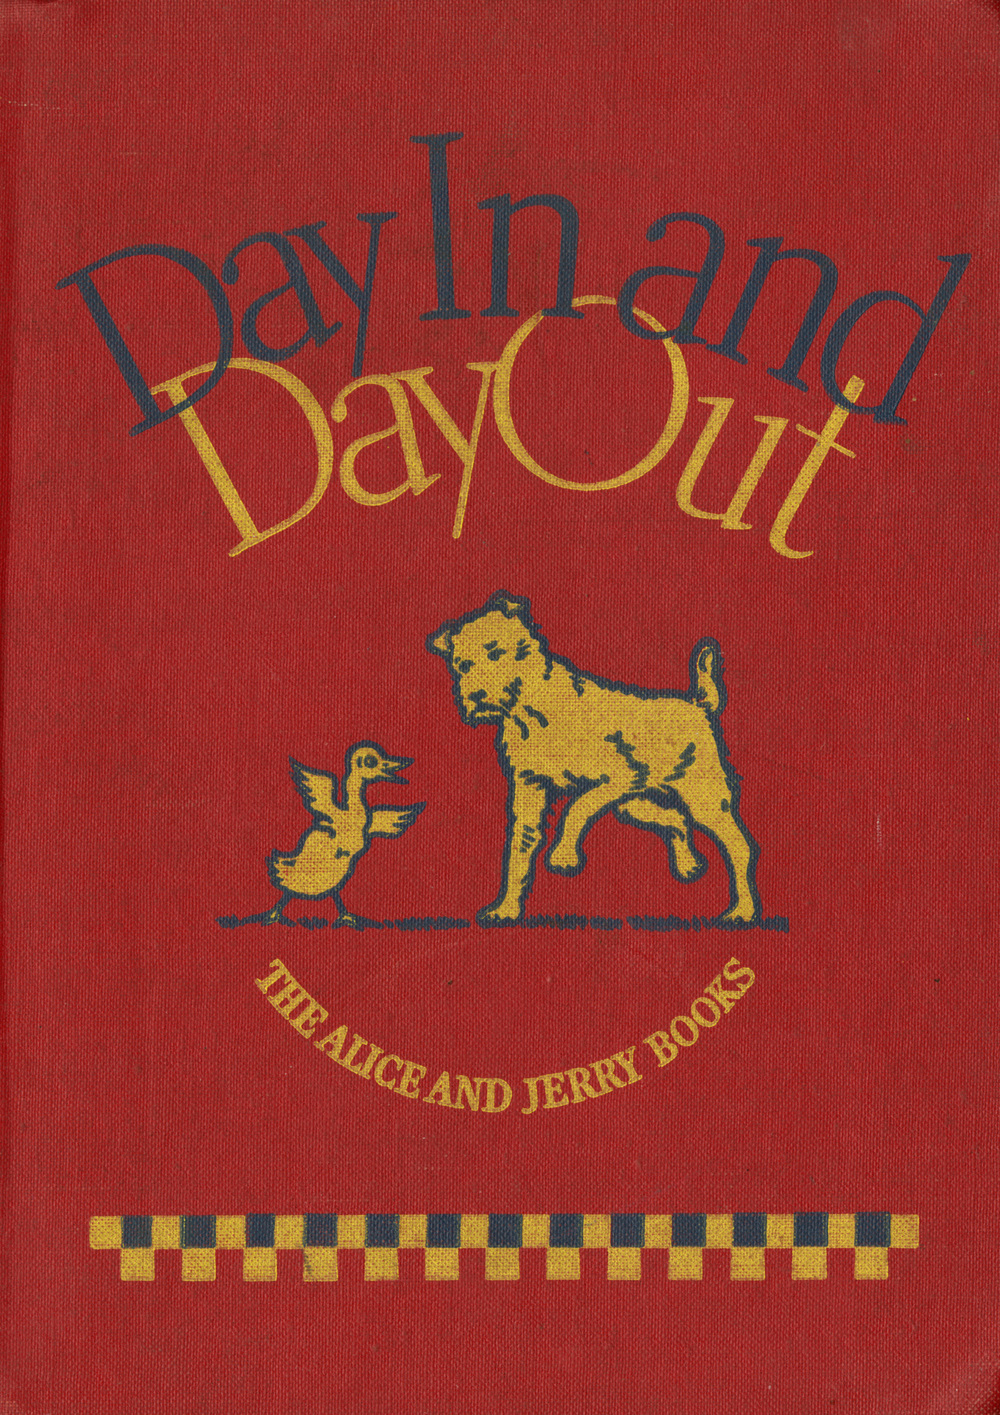 Day In and Day Out book cover. Written by Mabel O' Donnell & Alice Carey. Published by Row, Peterson and Co, 1936.